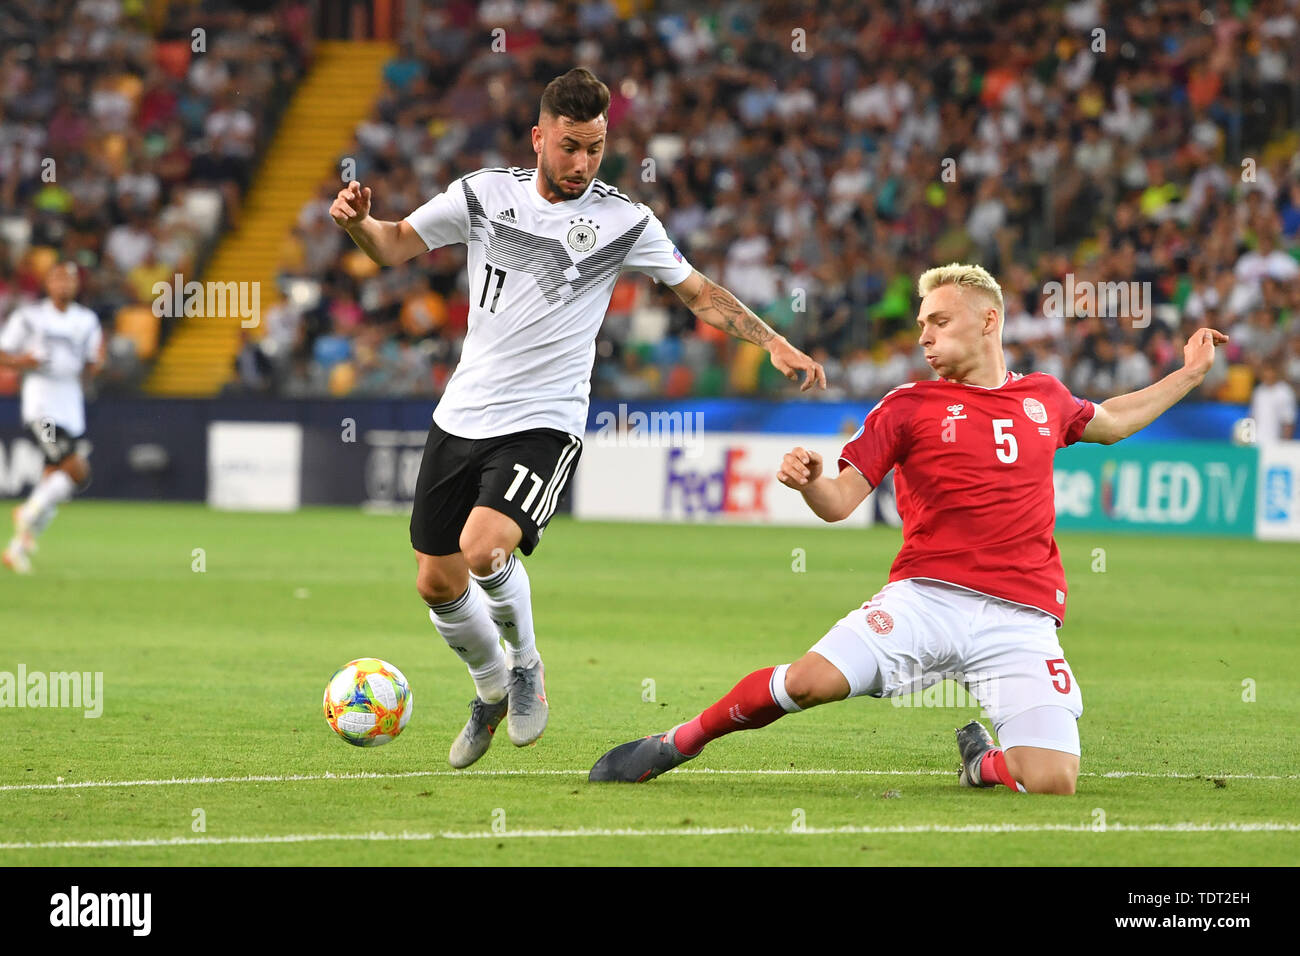 Marco RICHTER (GER), action, duels versus Victor NELSSON (DEN). Germany (GER) -Daenemark (DEN) 3-1, on 17.06.2019 Stadio Friuli Udine. Football U-21, UEFA Under21 European Championship in Italy/SanMarino from 16.-30.06.2019. | Usage worldwide - Stock Image